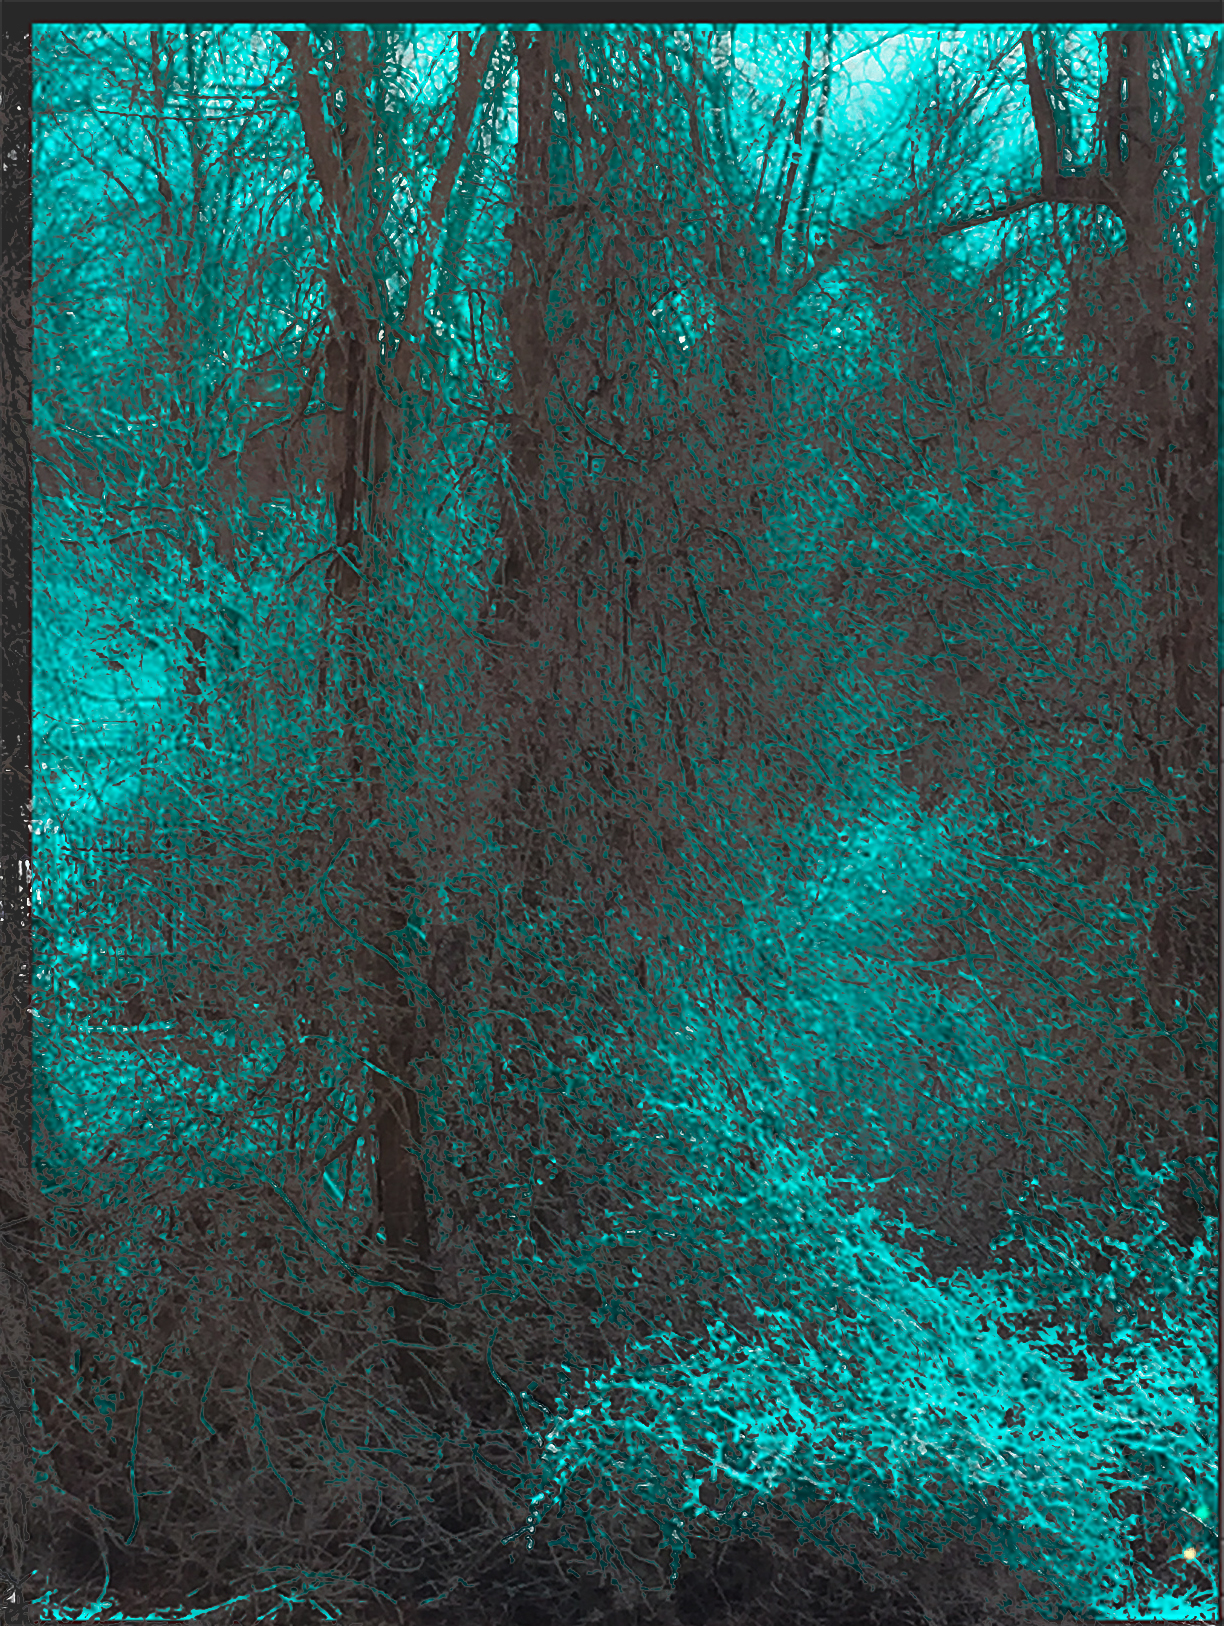 An image of trees on a textured, teal surface.